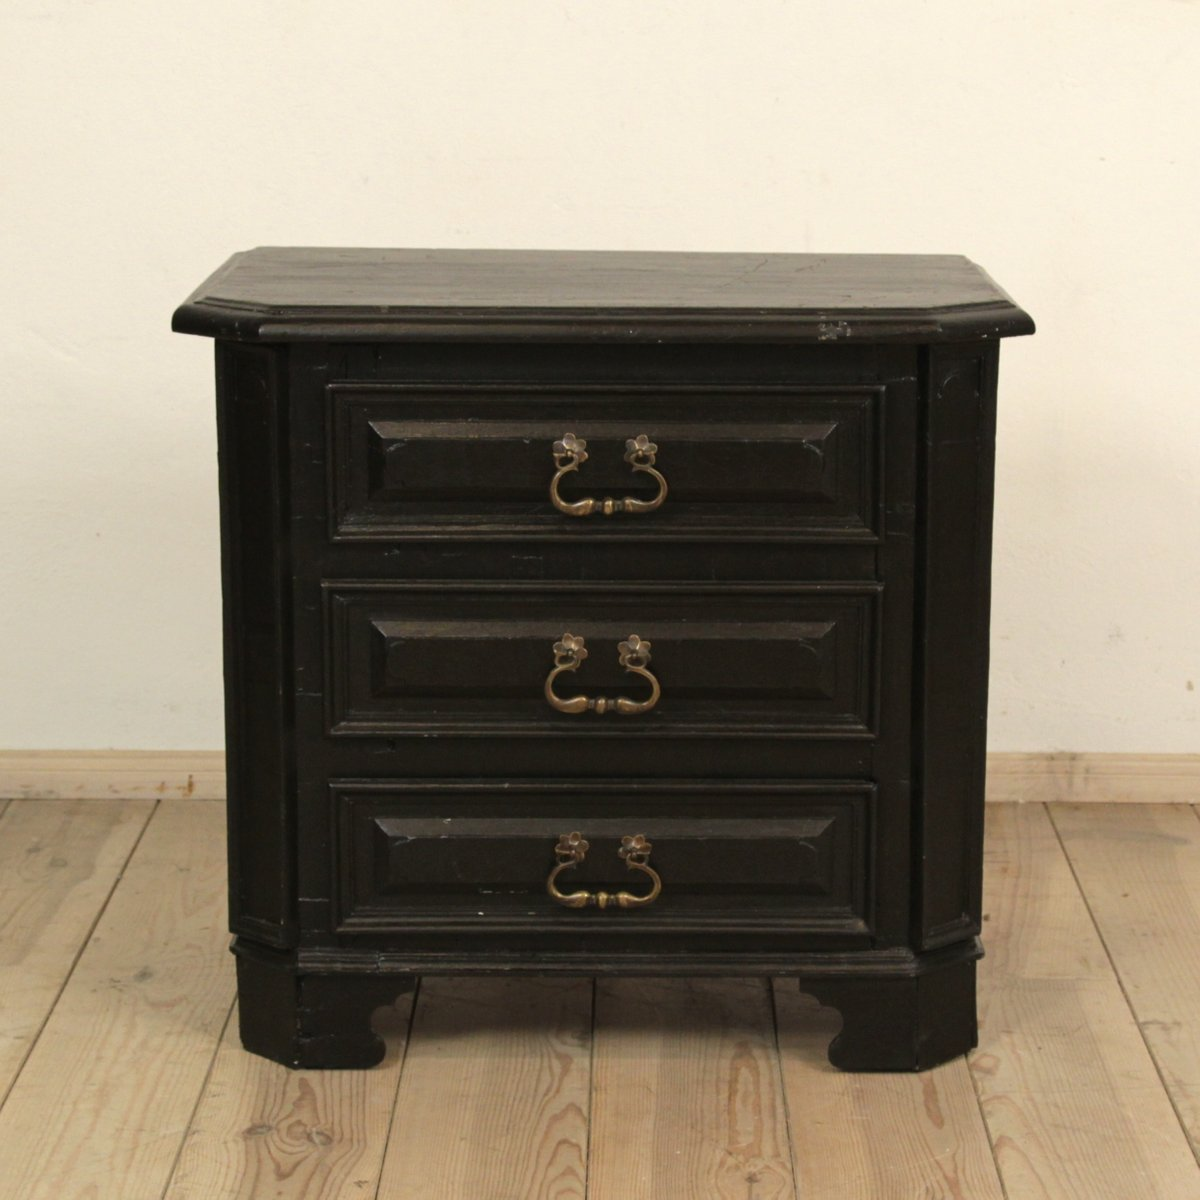 petite commode antique en bois laqu noir 1810 en vente sur pamono. Black Bedroom Furniture Sets. Home Design Ideas